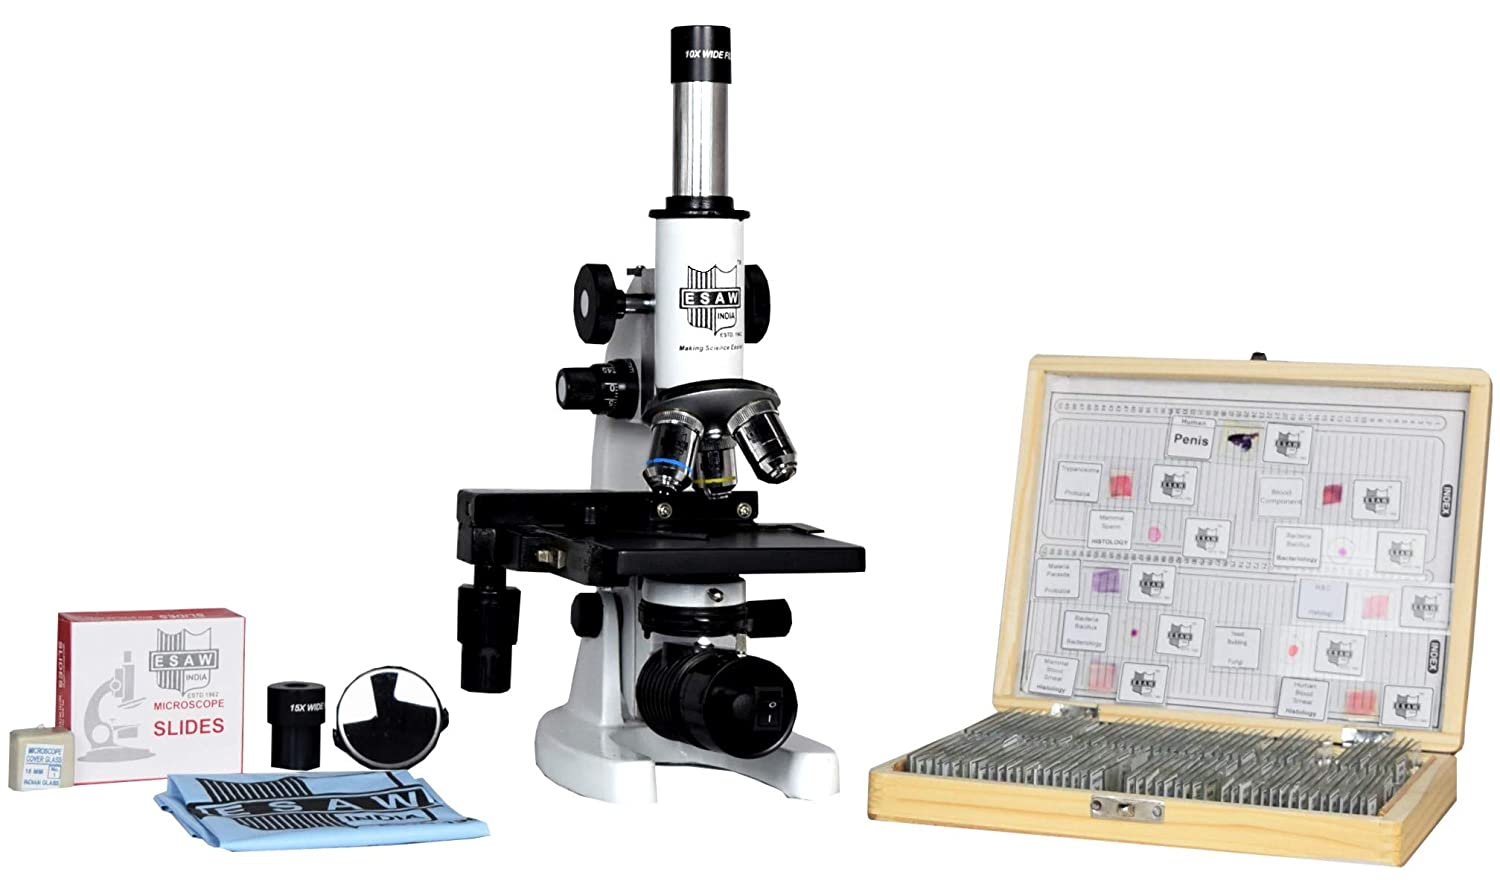 Esaw Compound Medical Microscope With 100 Prepared Microscopes Slides For Students Magnification 100x To 1500x